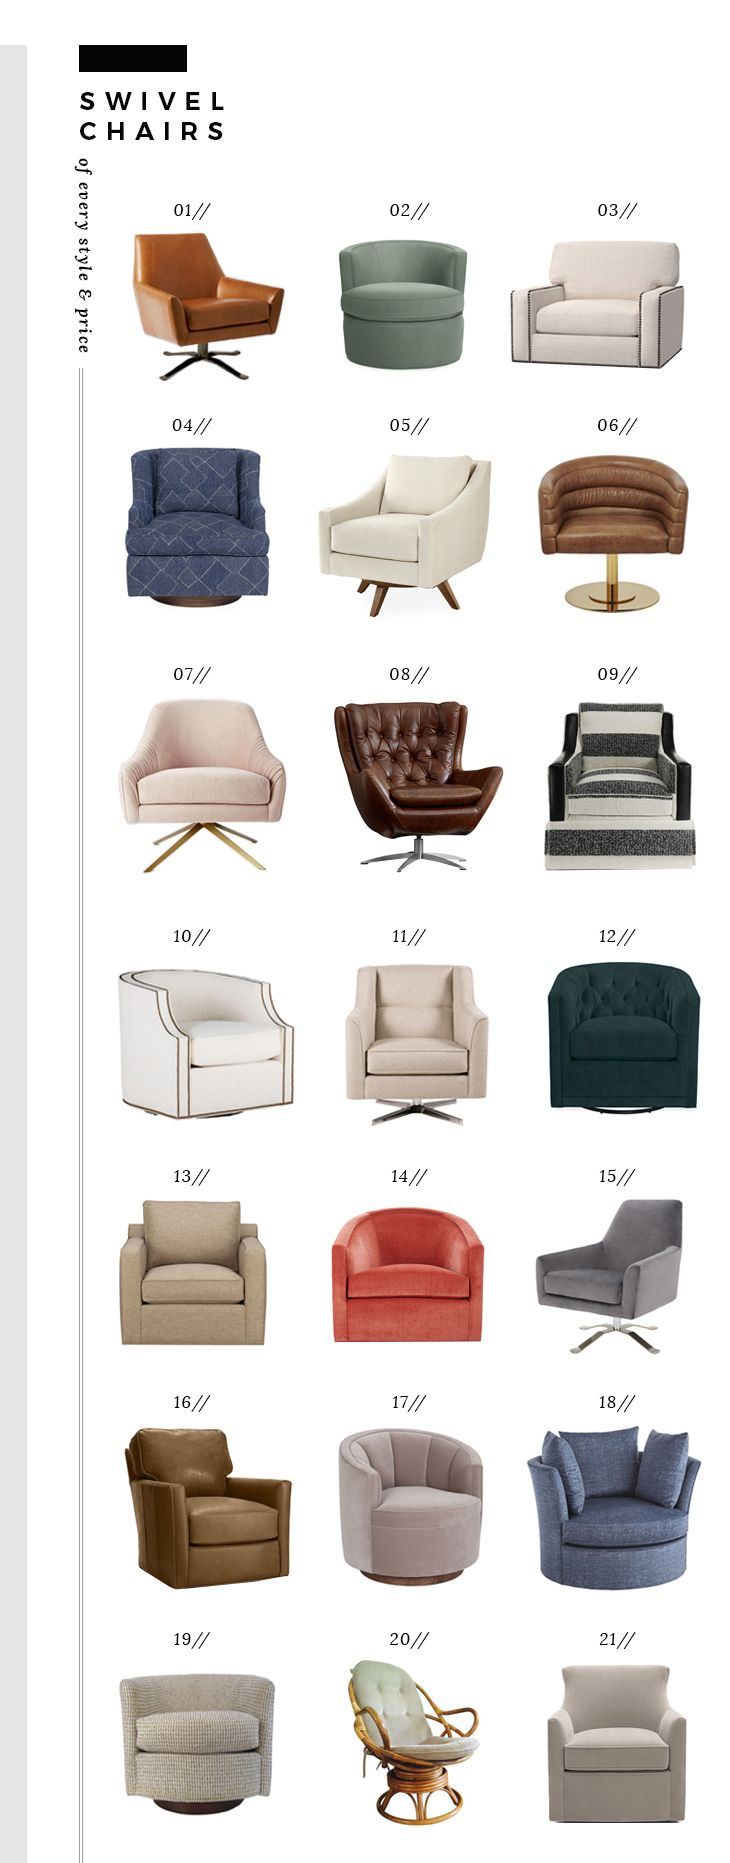 comfortable swivel chairs of every style and price